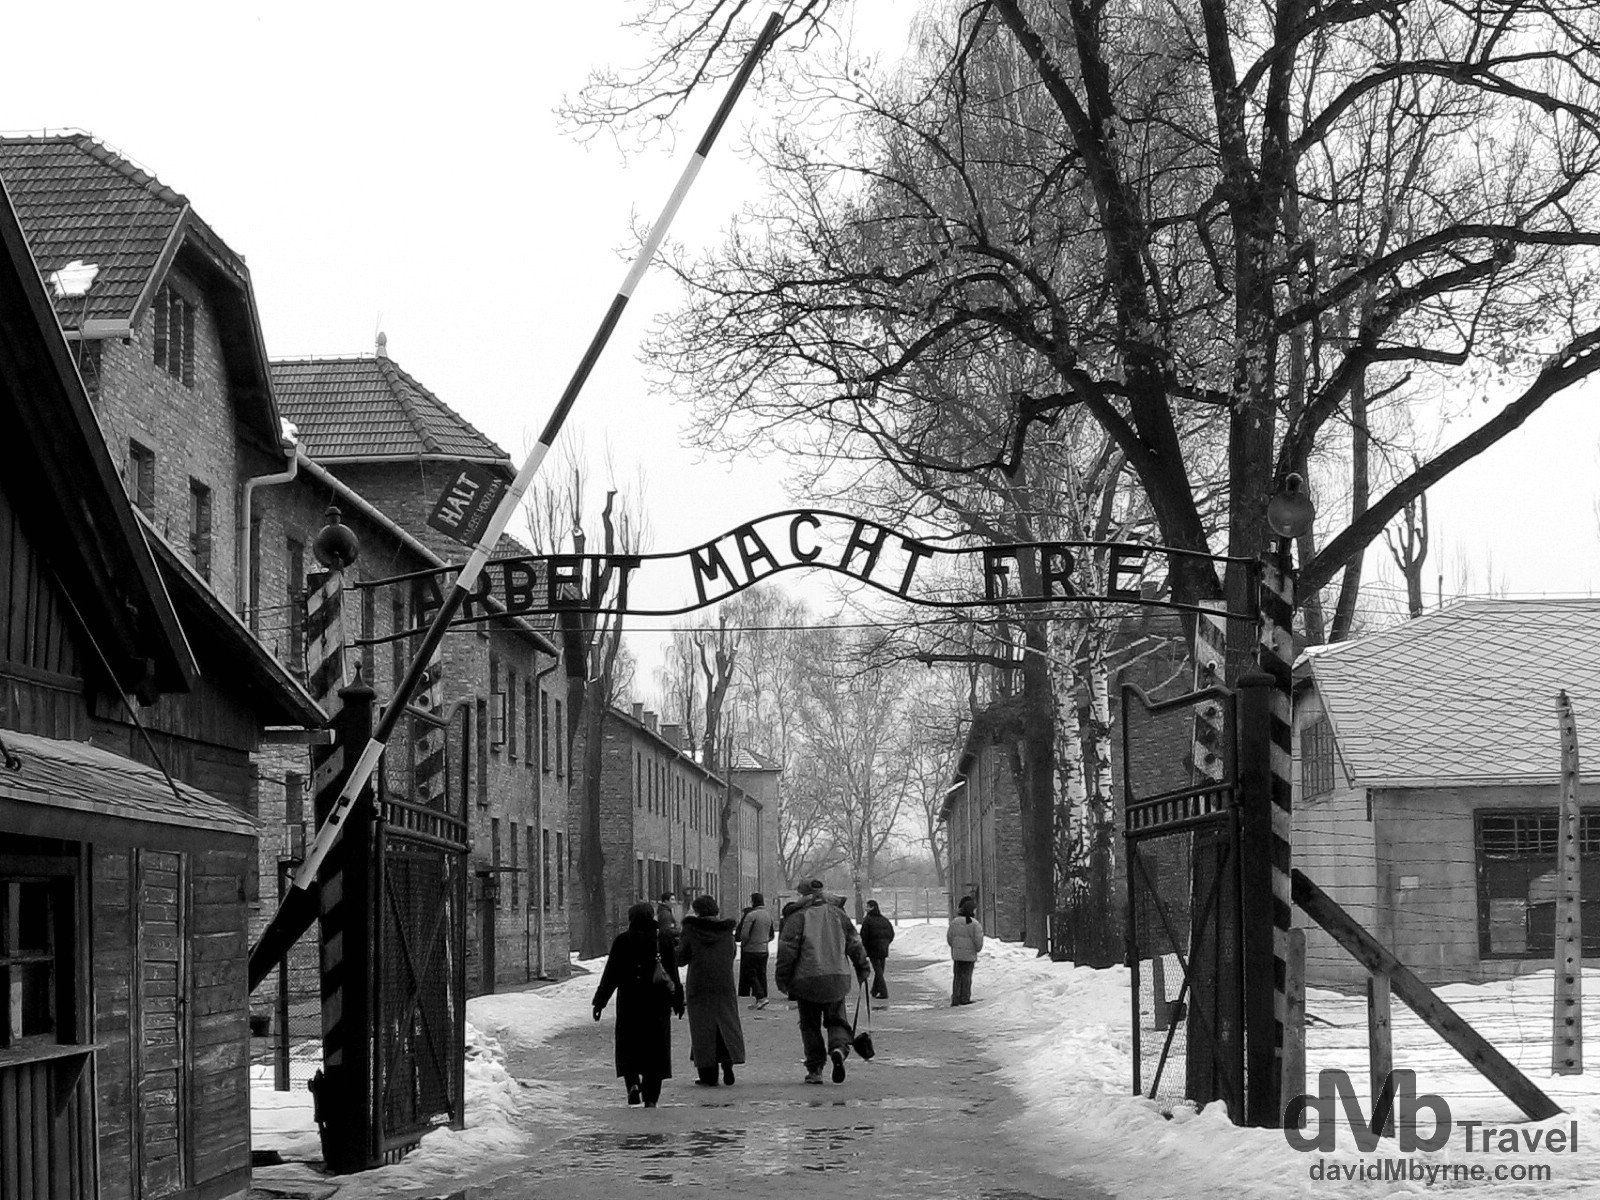 The main gate at Auschwitz I. It was through this gate that the working prisoners, the lucky ones, were marched each day on their way to and from work. The cynical German inscription reads 'Arbeit macht frei', which translates into 'work brings freedom'. The State Museum in Oswiecim (Auschwitz), Poland. March 7th 2006.